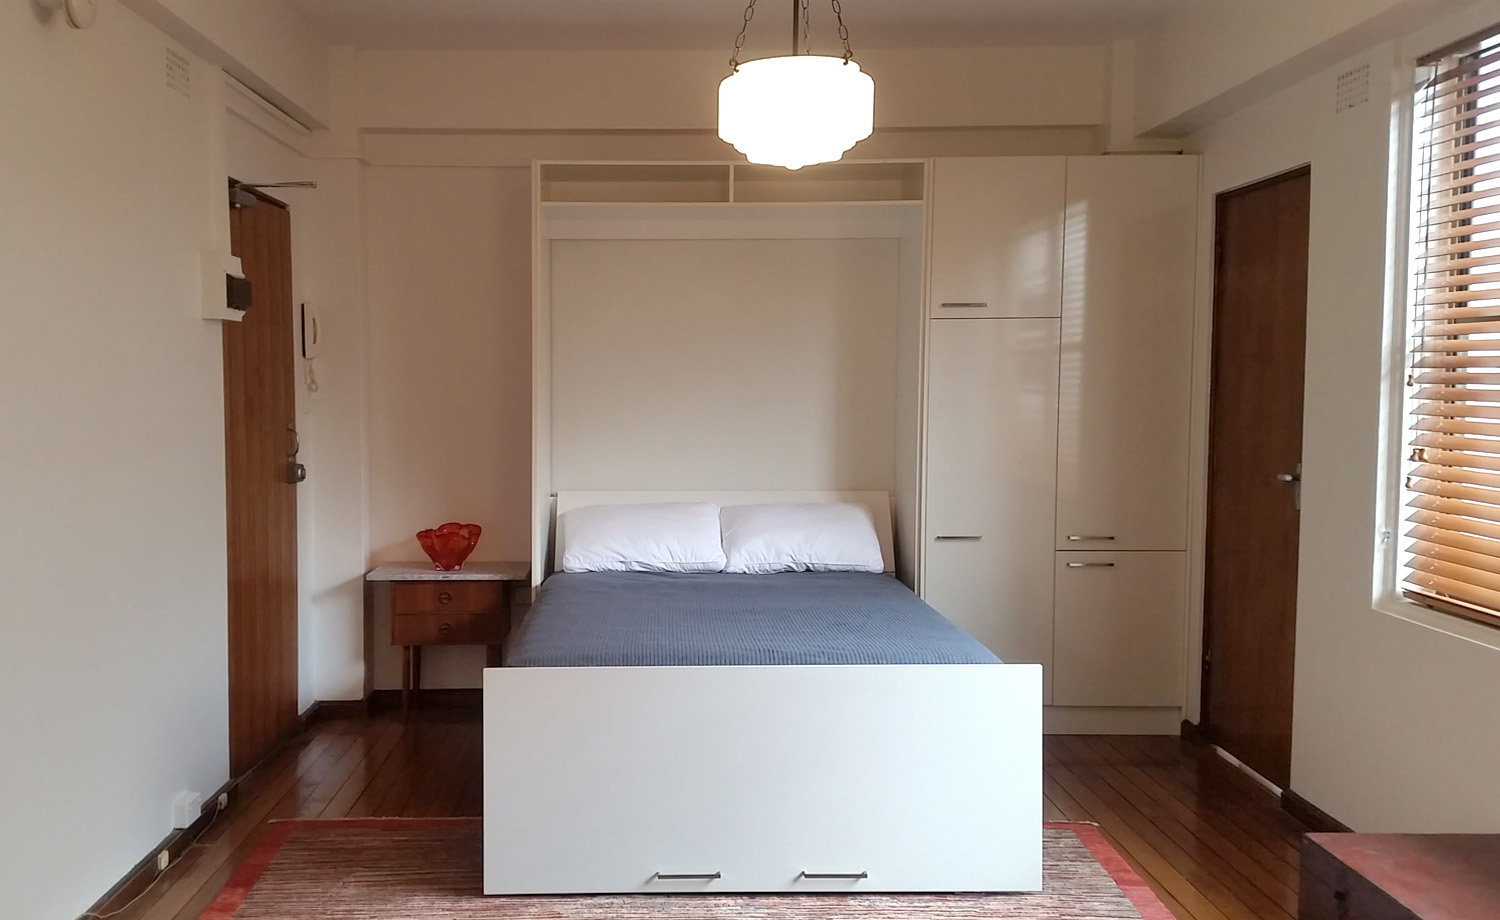 City-Kitchens_Potts-Point-2_Apartment-Renovation_Bed-02.jpg